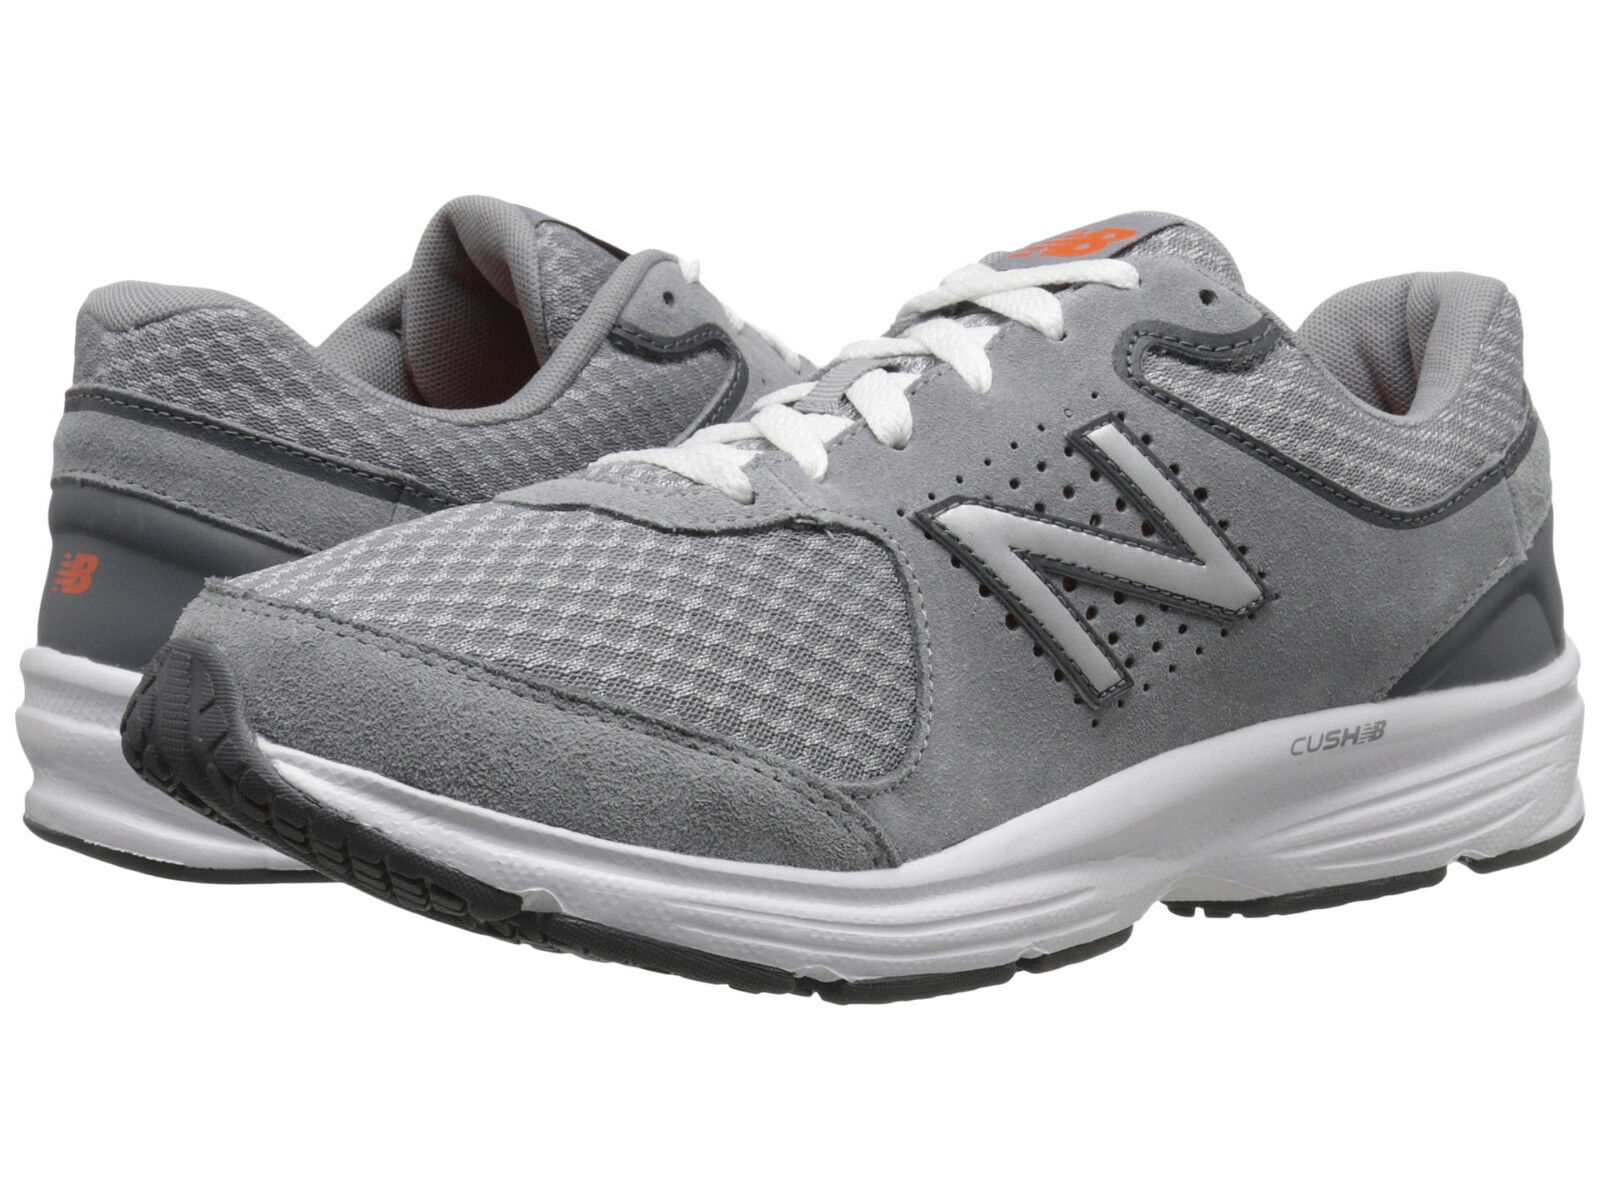 Uomo New Balance MW411GR2 Walking (Medium D) D) D) Grey 100% Authentic Brand New c6d1db